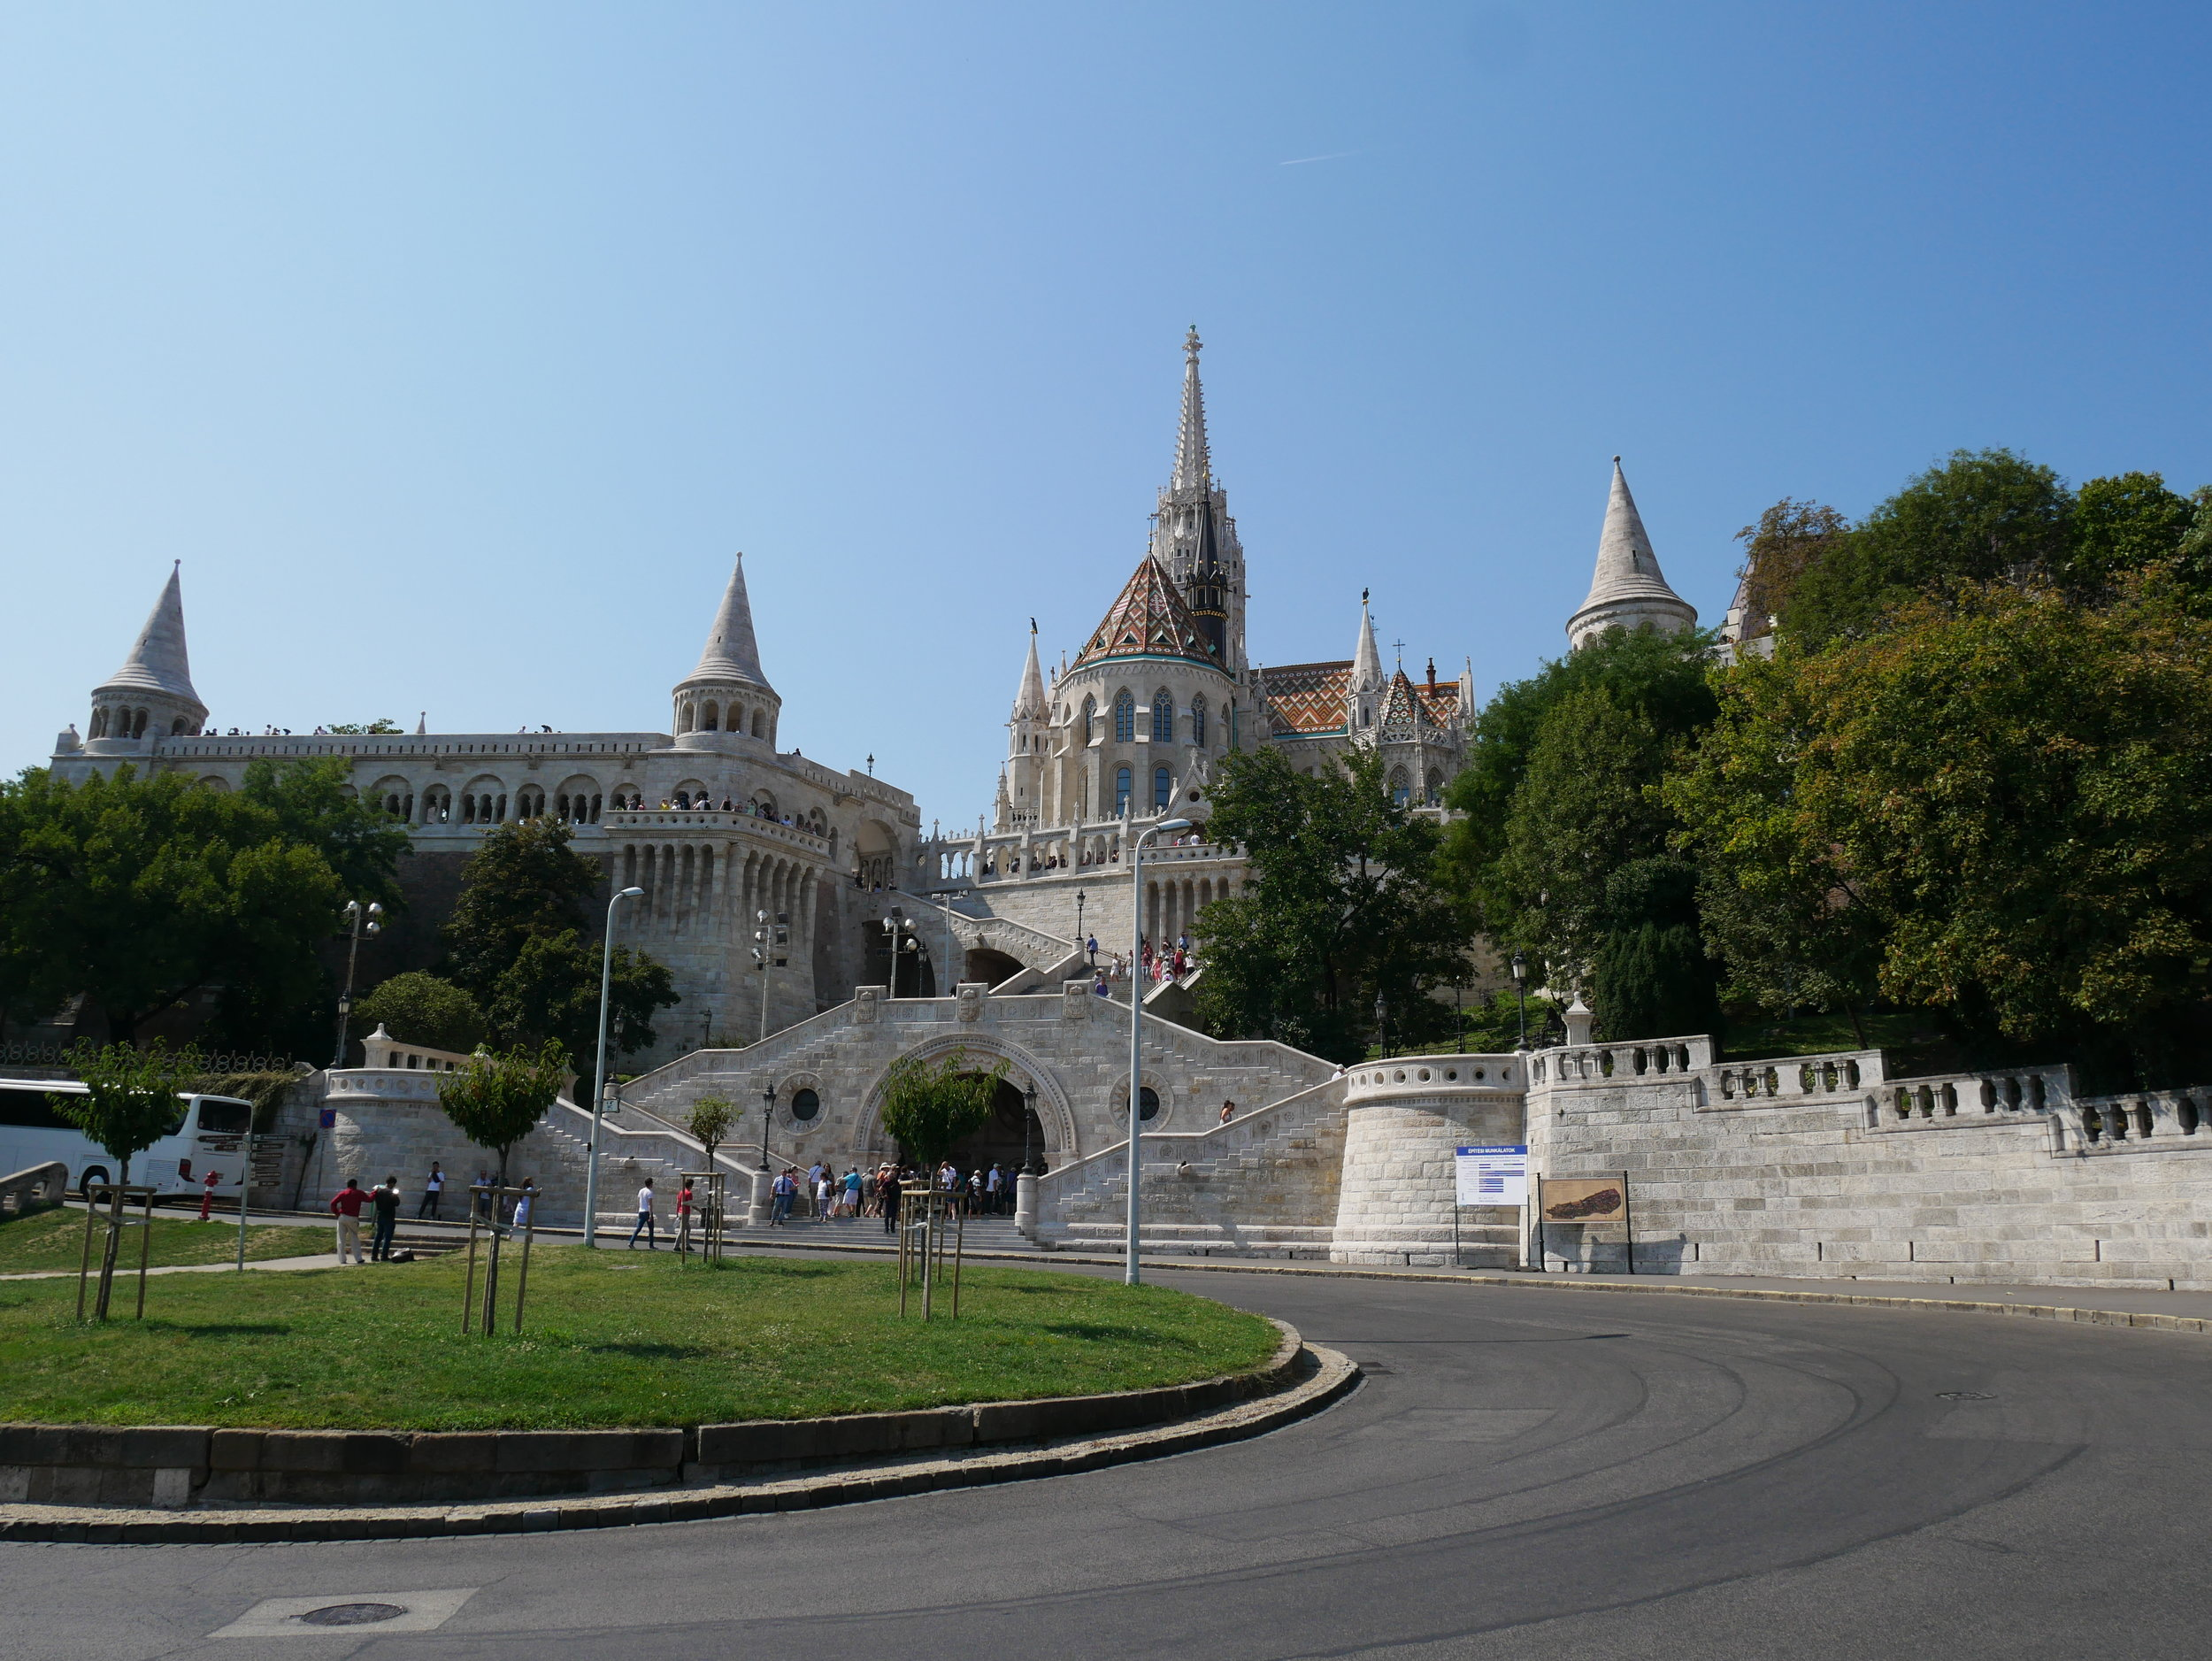 After climbing many stairs, we arrived at Fisherman's Bastion, a historic Buda terrace that overlooks the Danube.